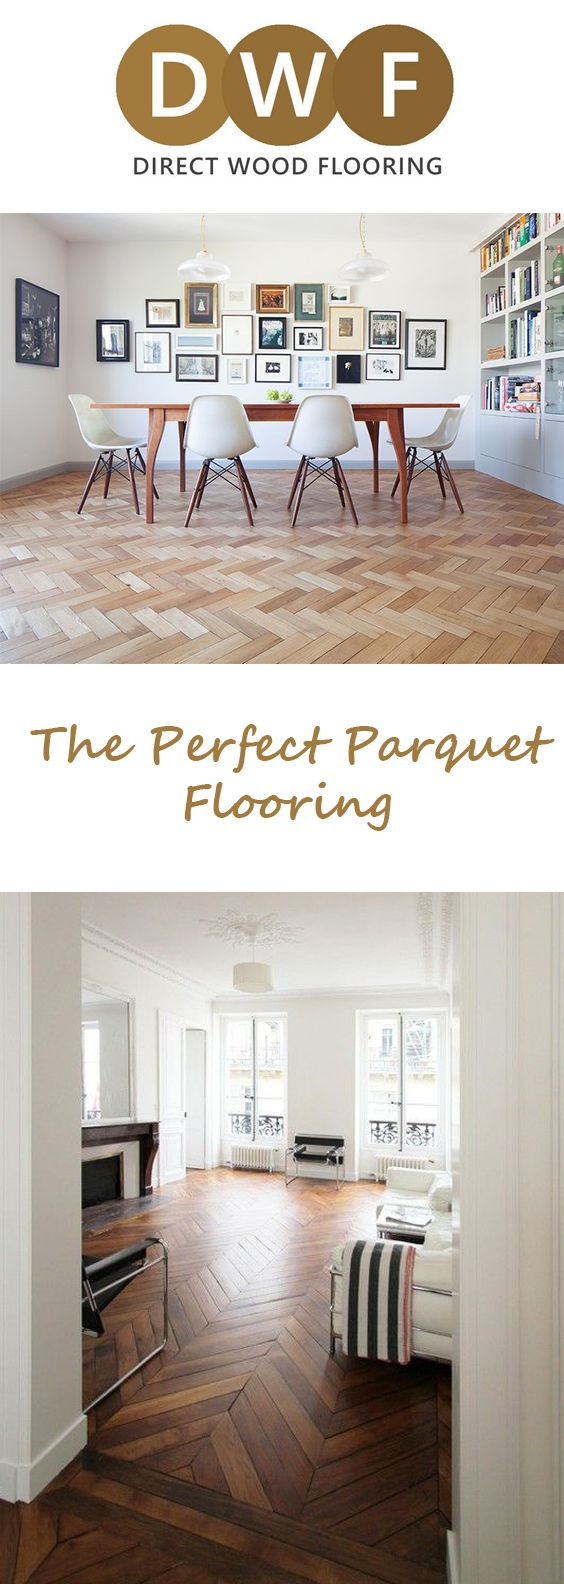 26 best Wood Flooring Advice images on Pinterest | Flooring, Wood ... : trappmatta : Inredning